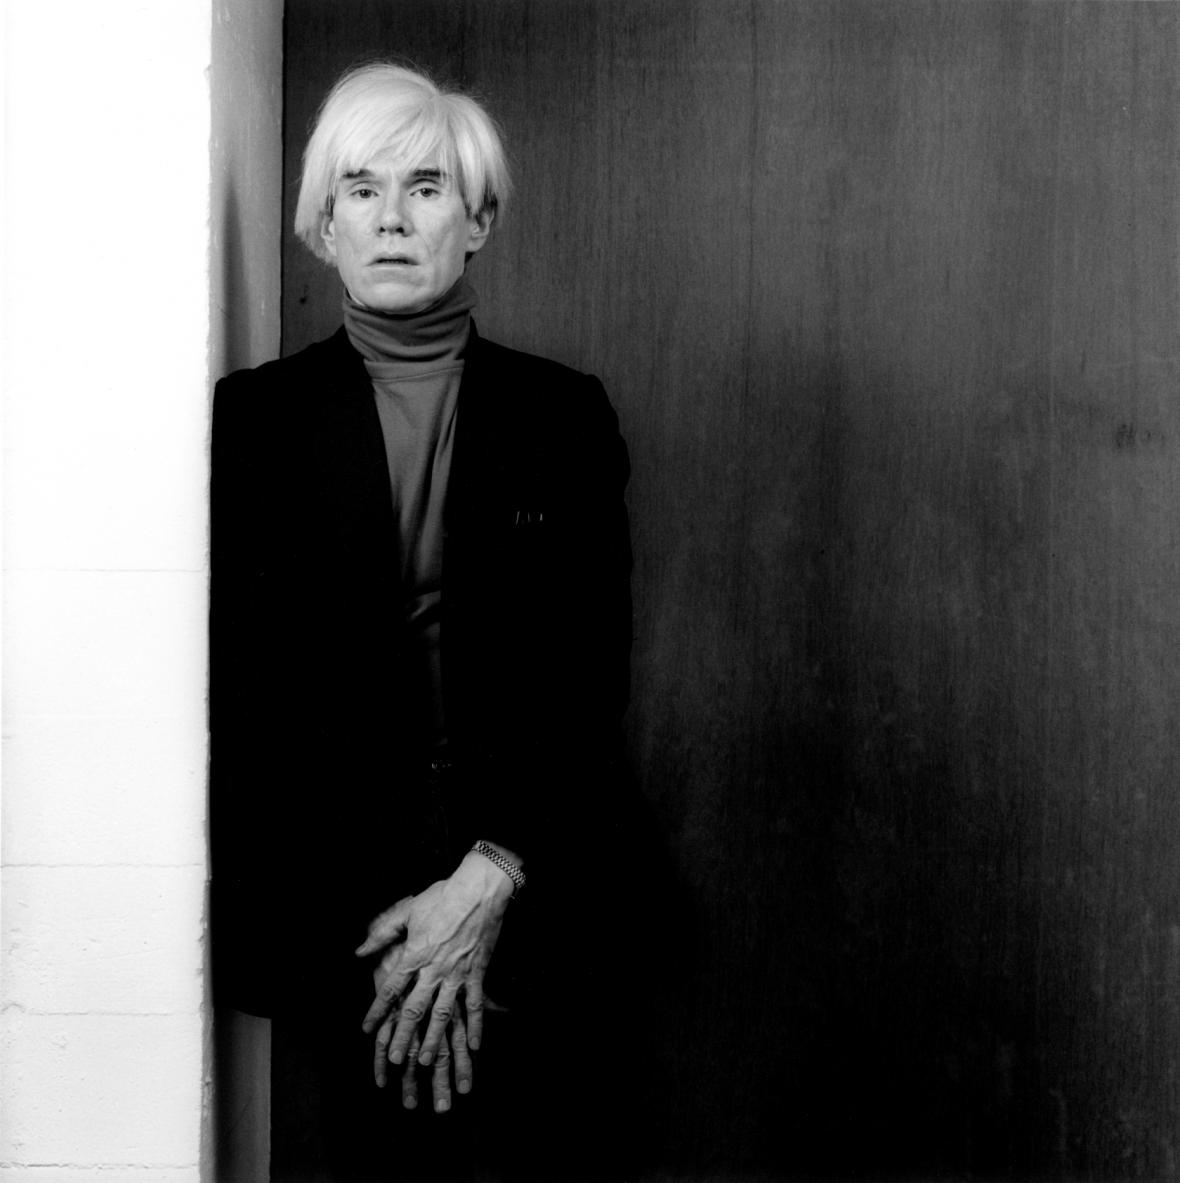 Robert Mapplethorpe: Andy Warhol